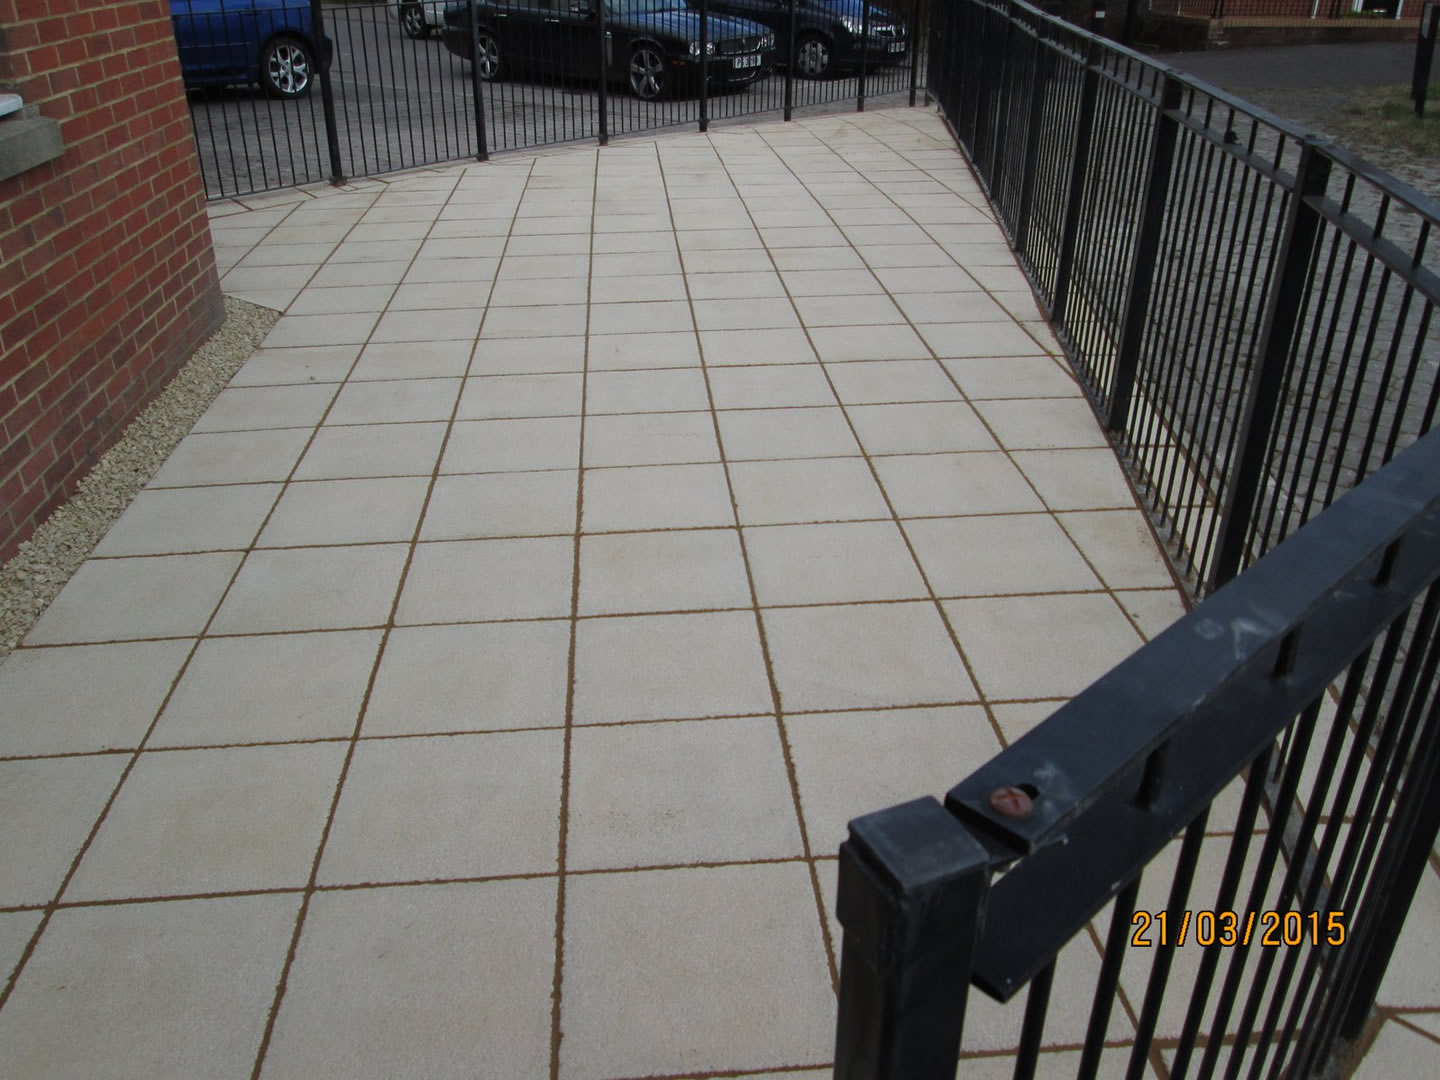 Garden Patio & Paving - 4L02